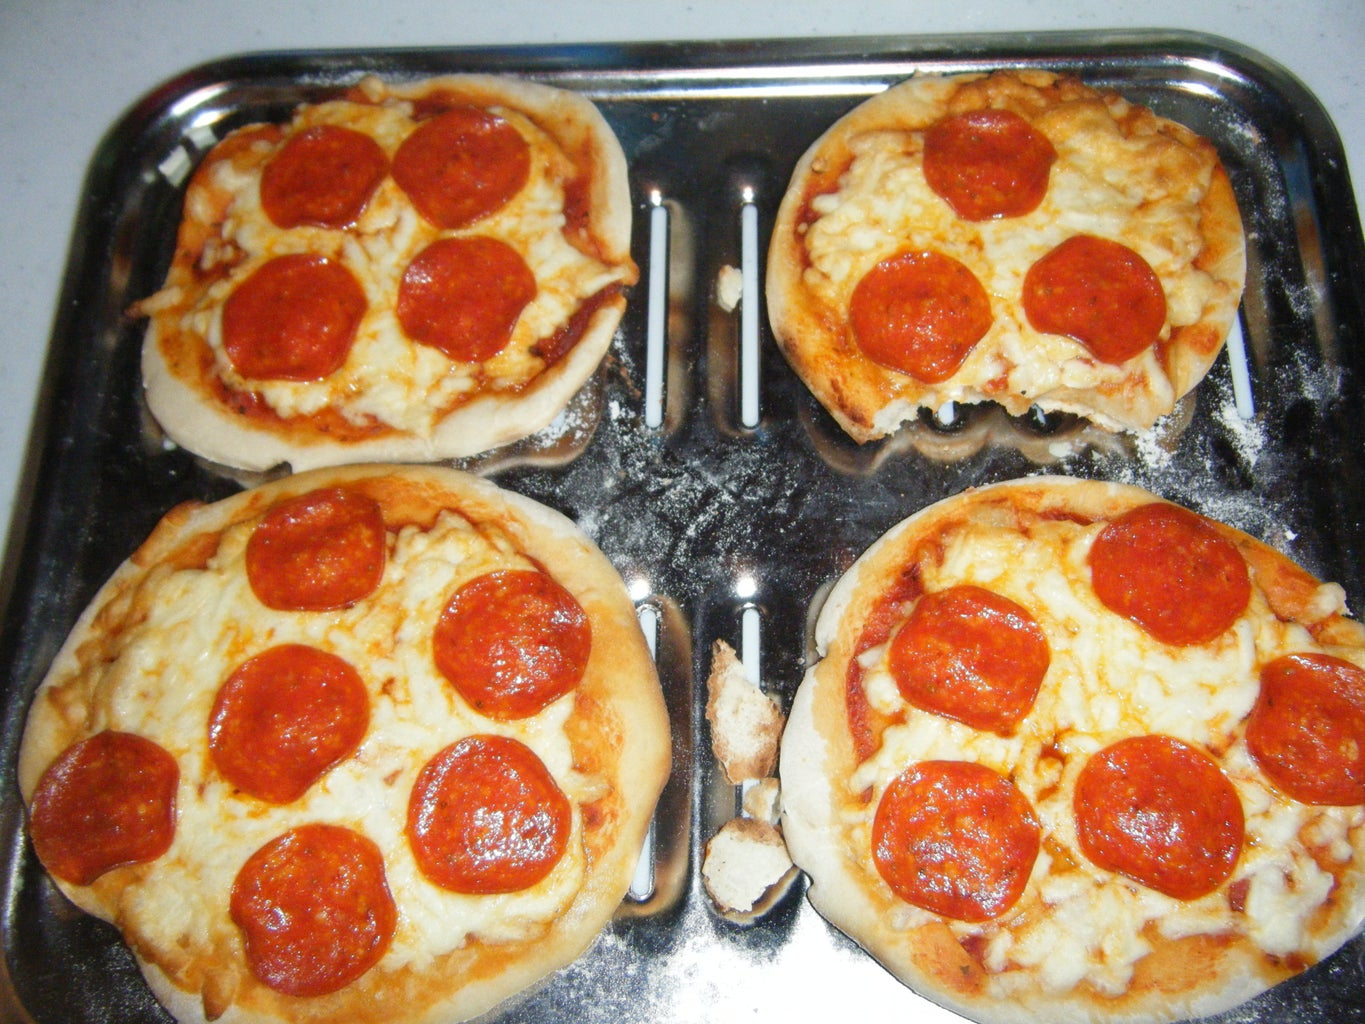 Grill the Pizza